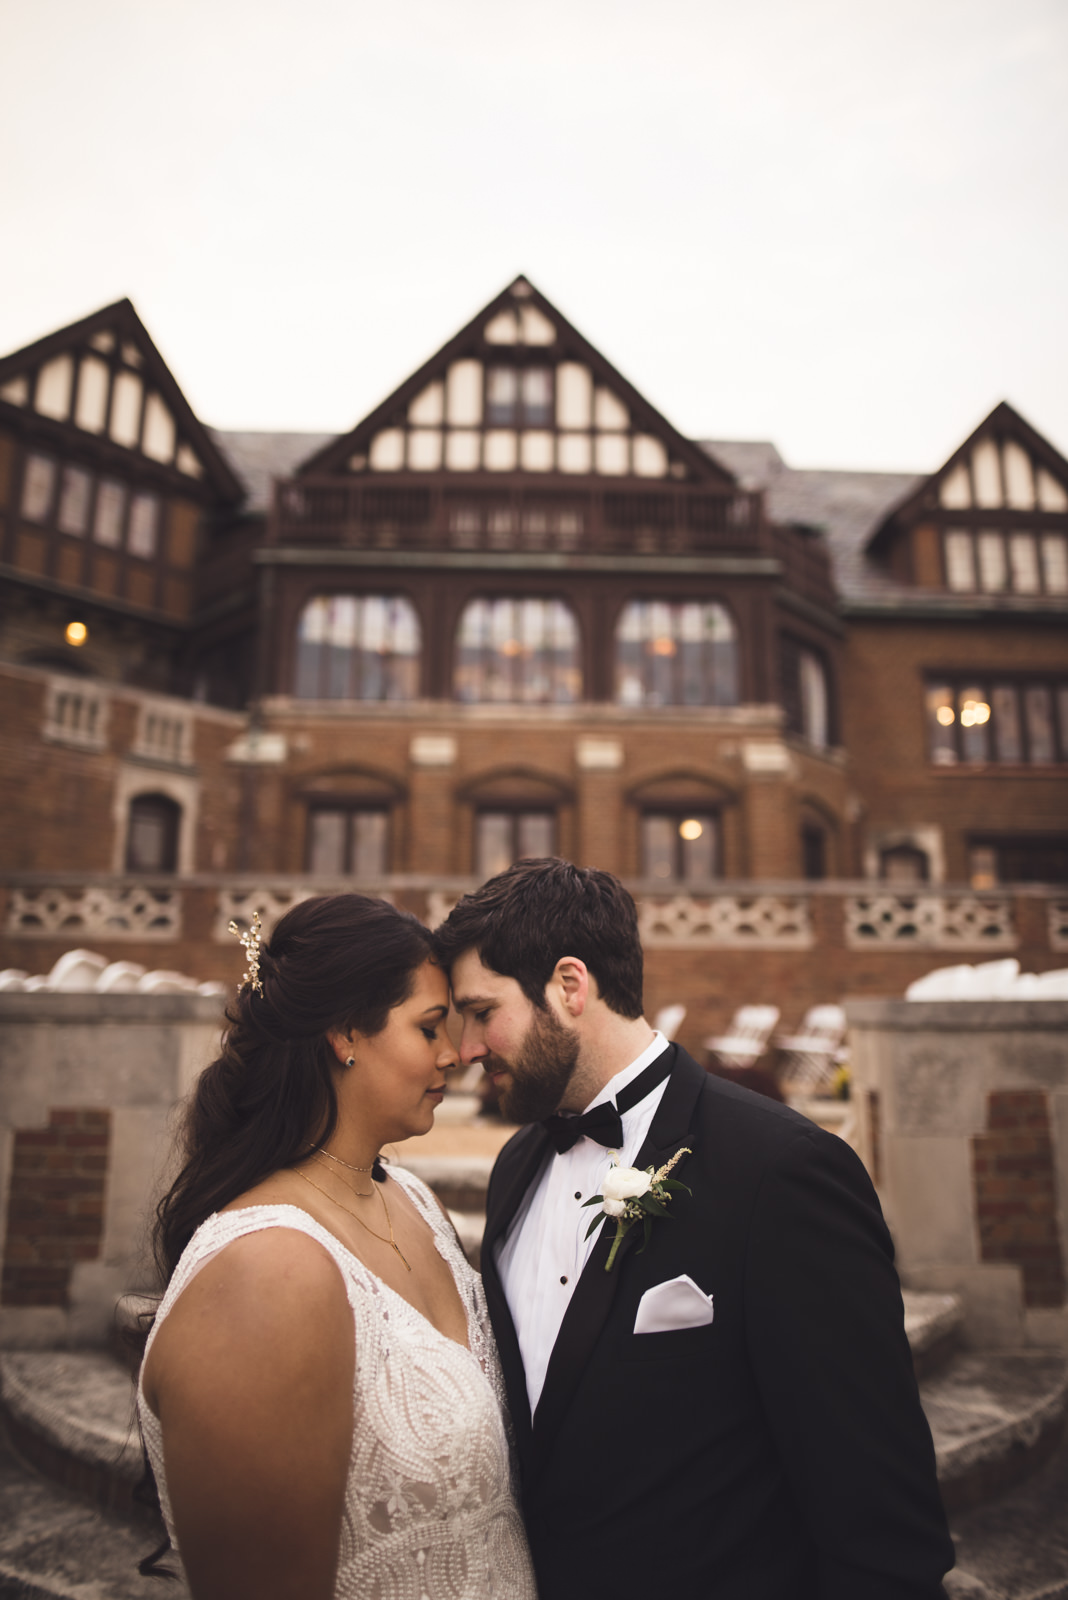 rollins-mansion-3136-wedding-photographer-des-moines-iowa-m-c.jpg